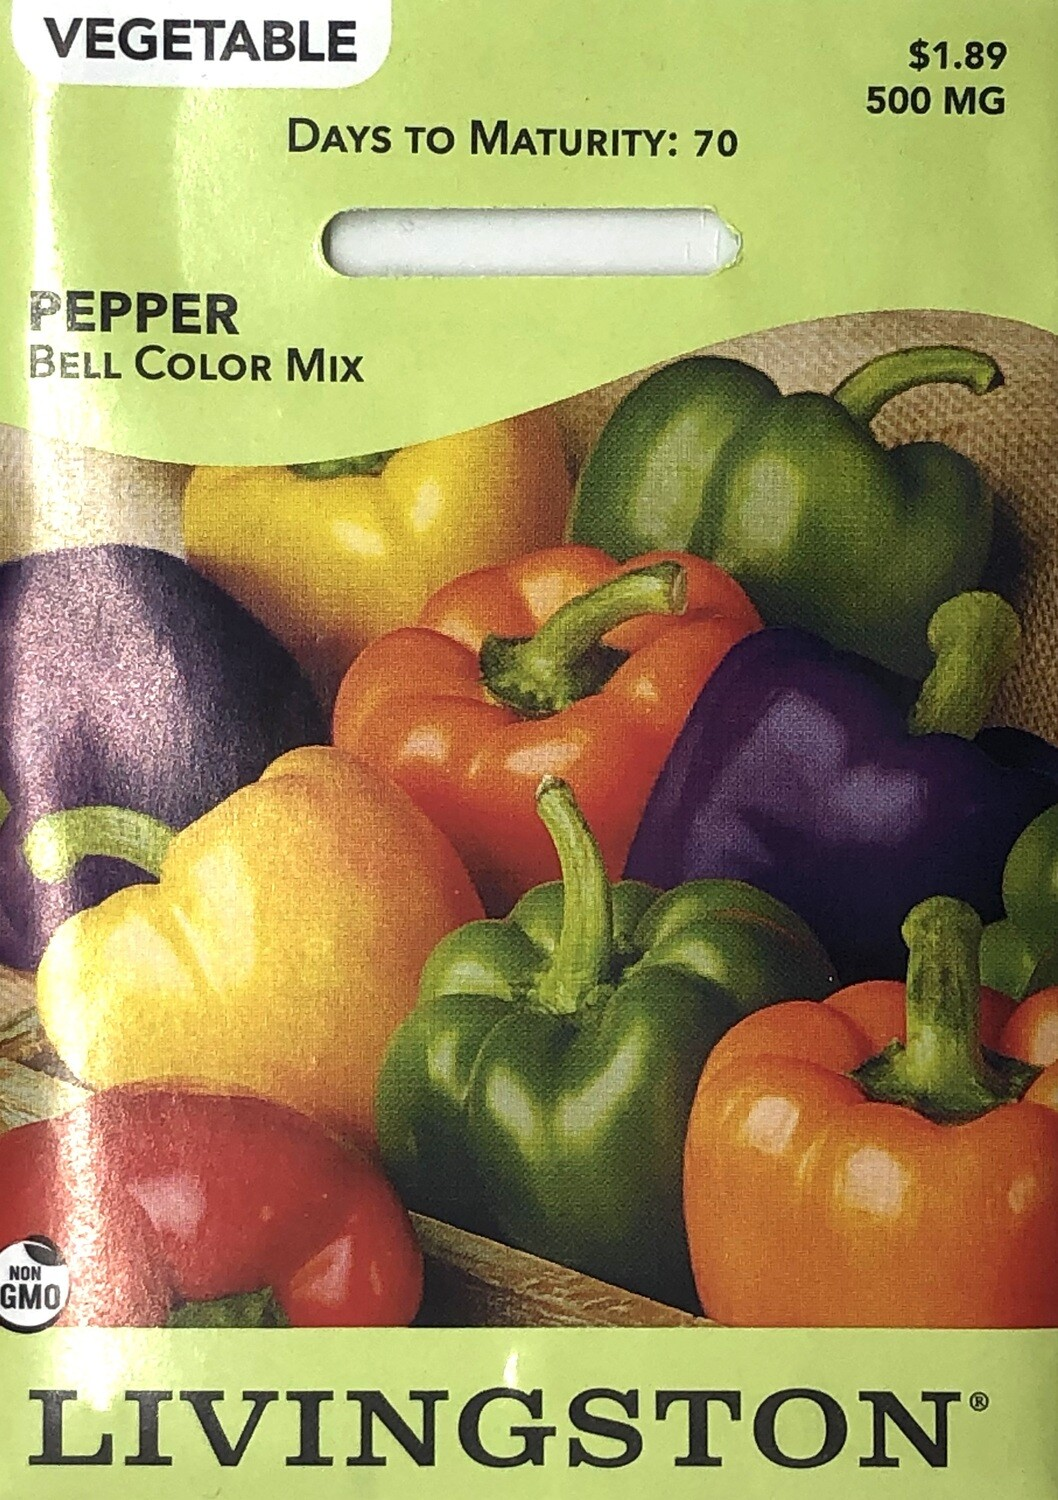 PEPPER - BELL COLOR MIX